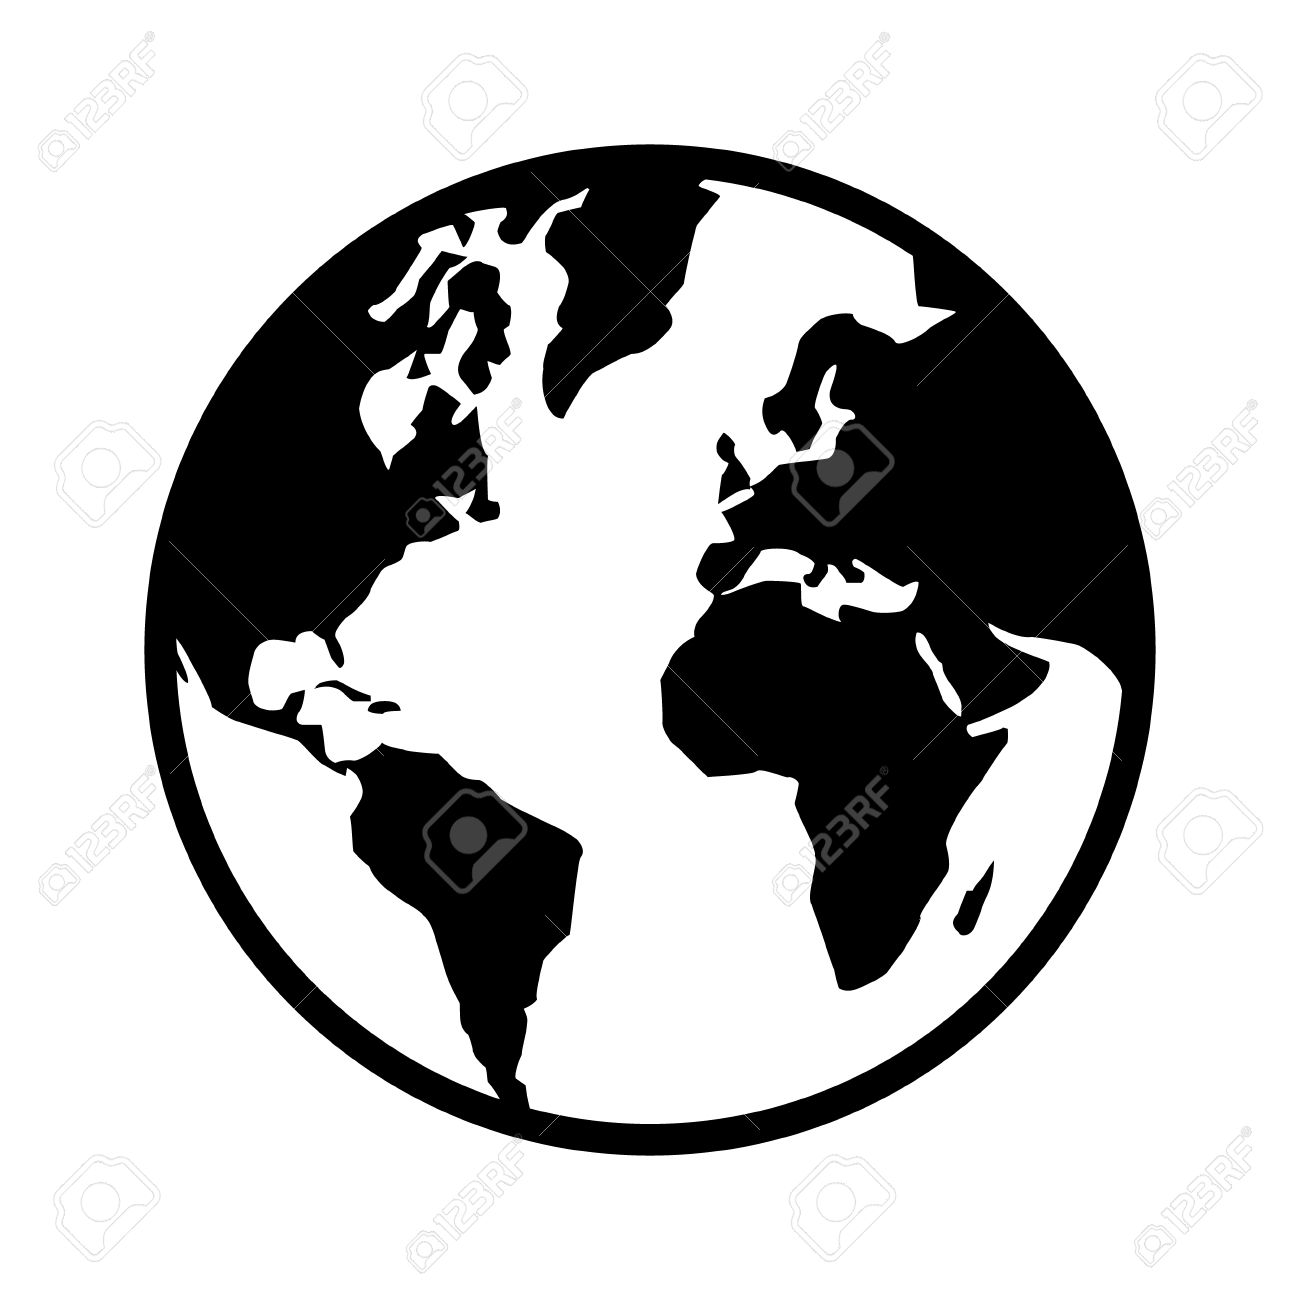 World Map Vector Png at GetDrawings.com | Free for personal ...